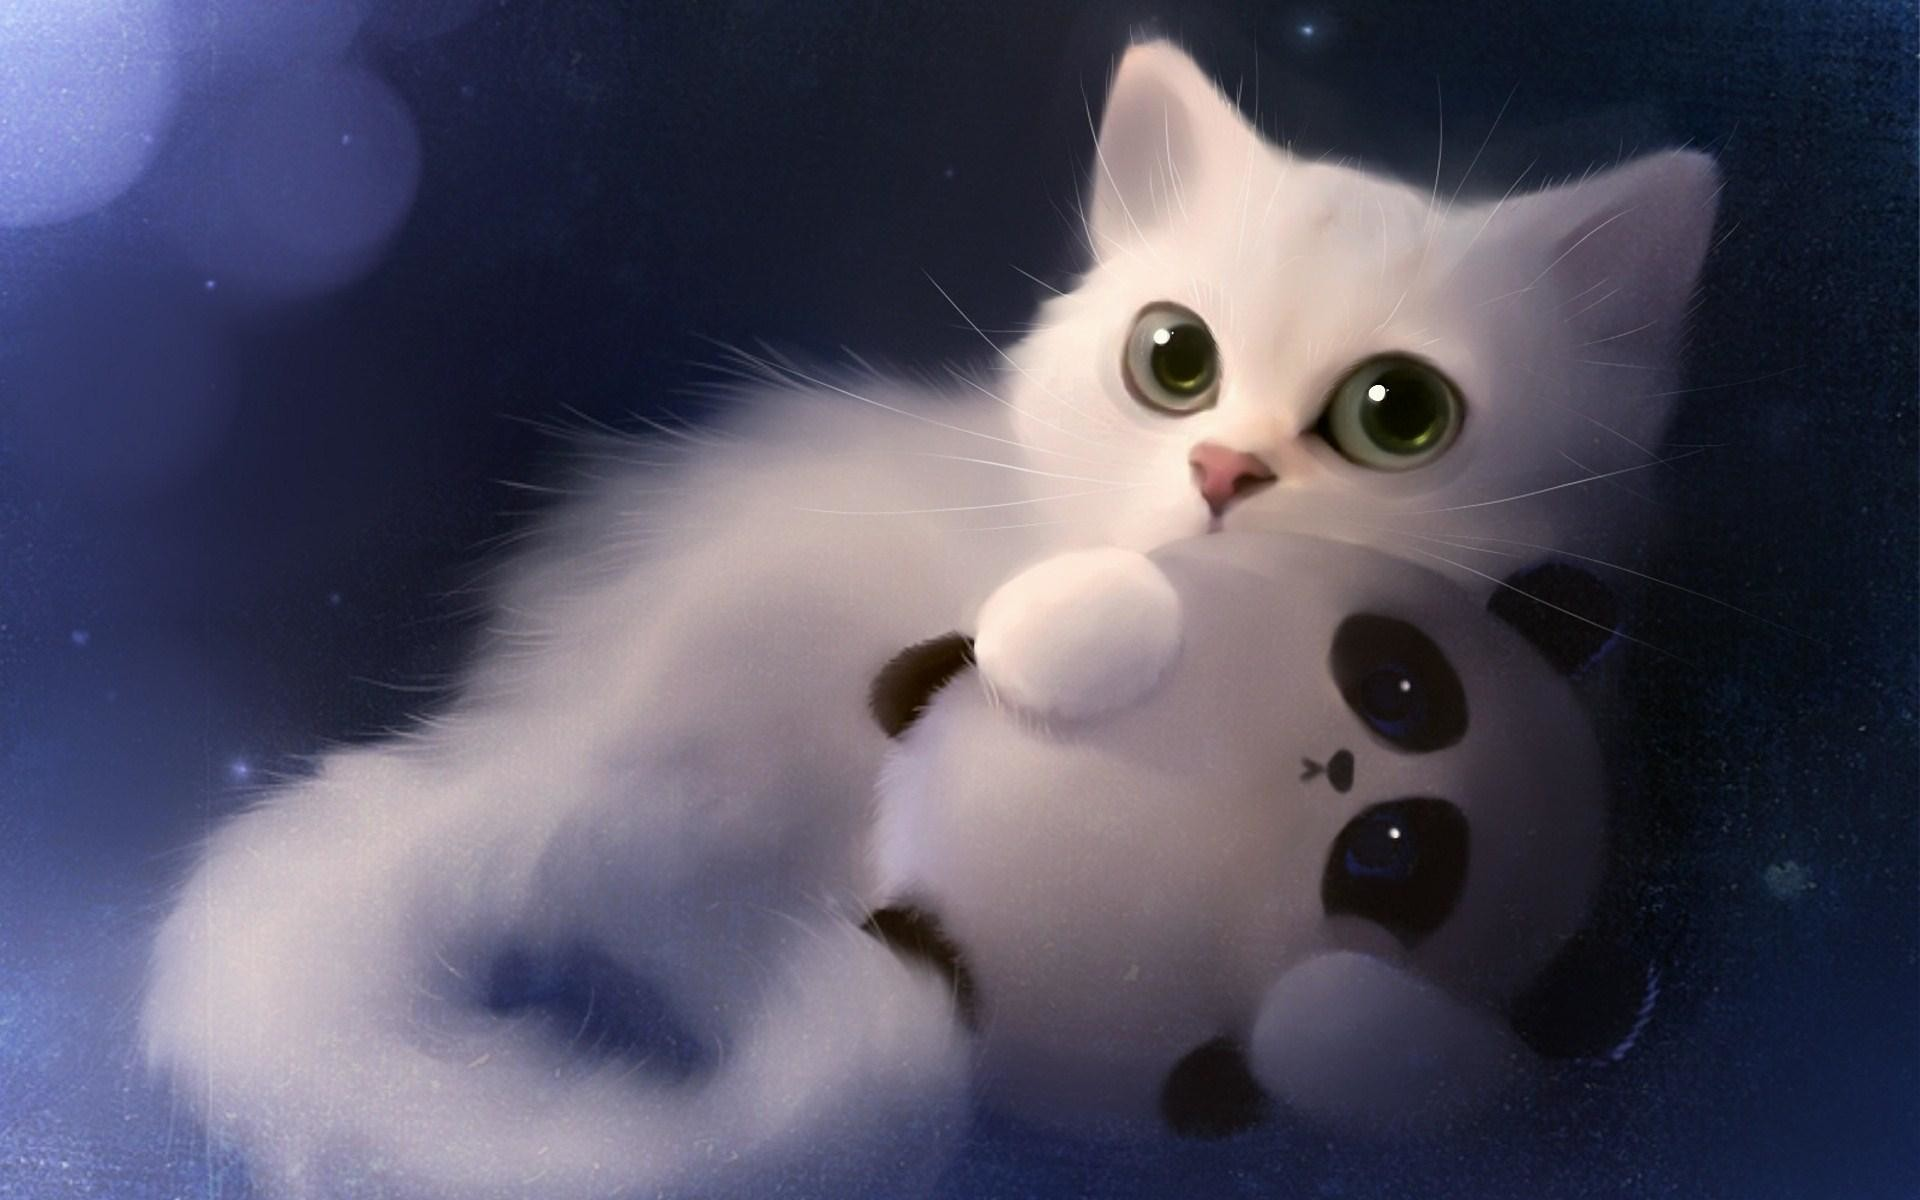 wallpaper.wiki-Cute-HD-Background-Wallpapers-PIC-WPD009672